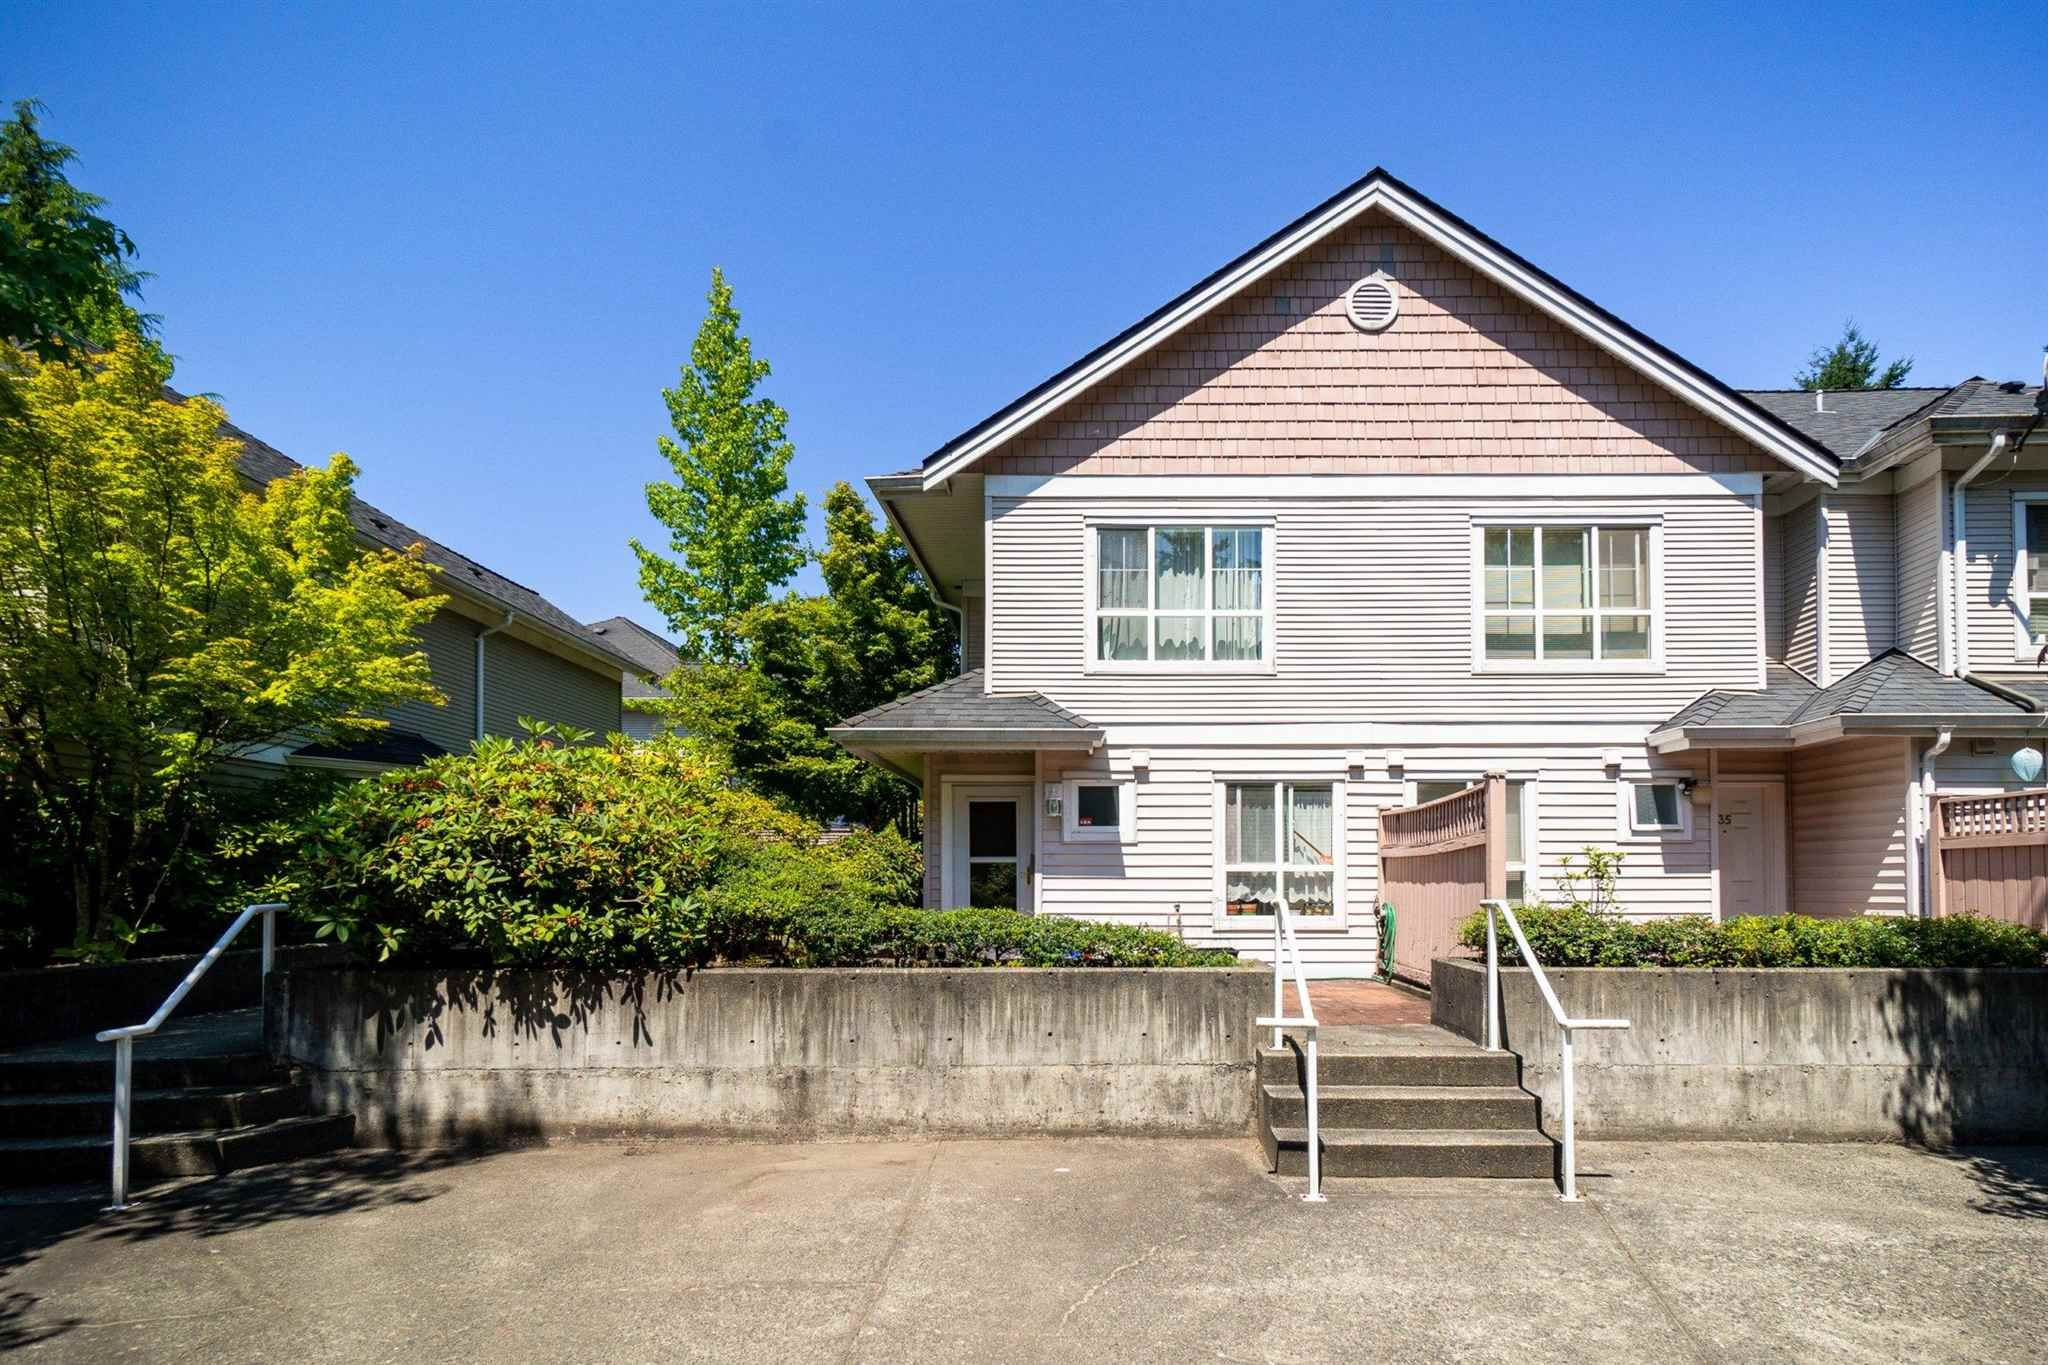 """Main Photo: 36 6670 RUMBLE Street in Burnaby: South Slope Townhouse for sale in """"MERIDIAN BY THE PARK"""" (Burnaby South)  : MLS®# R2603562"""